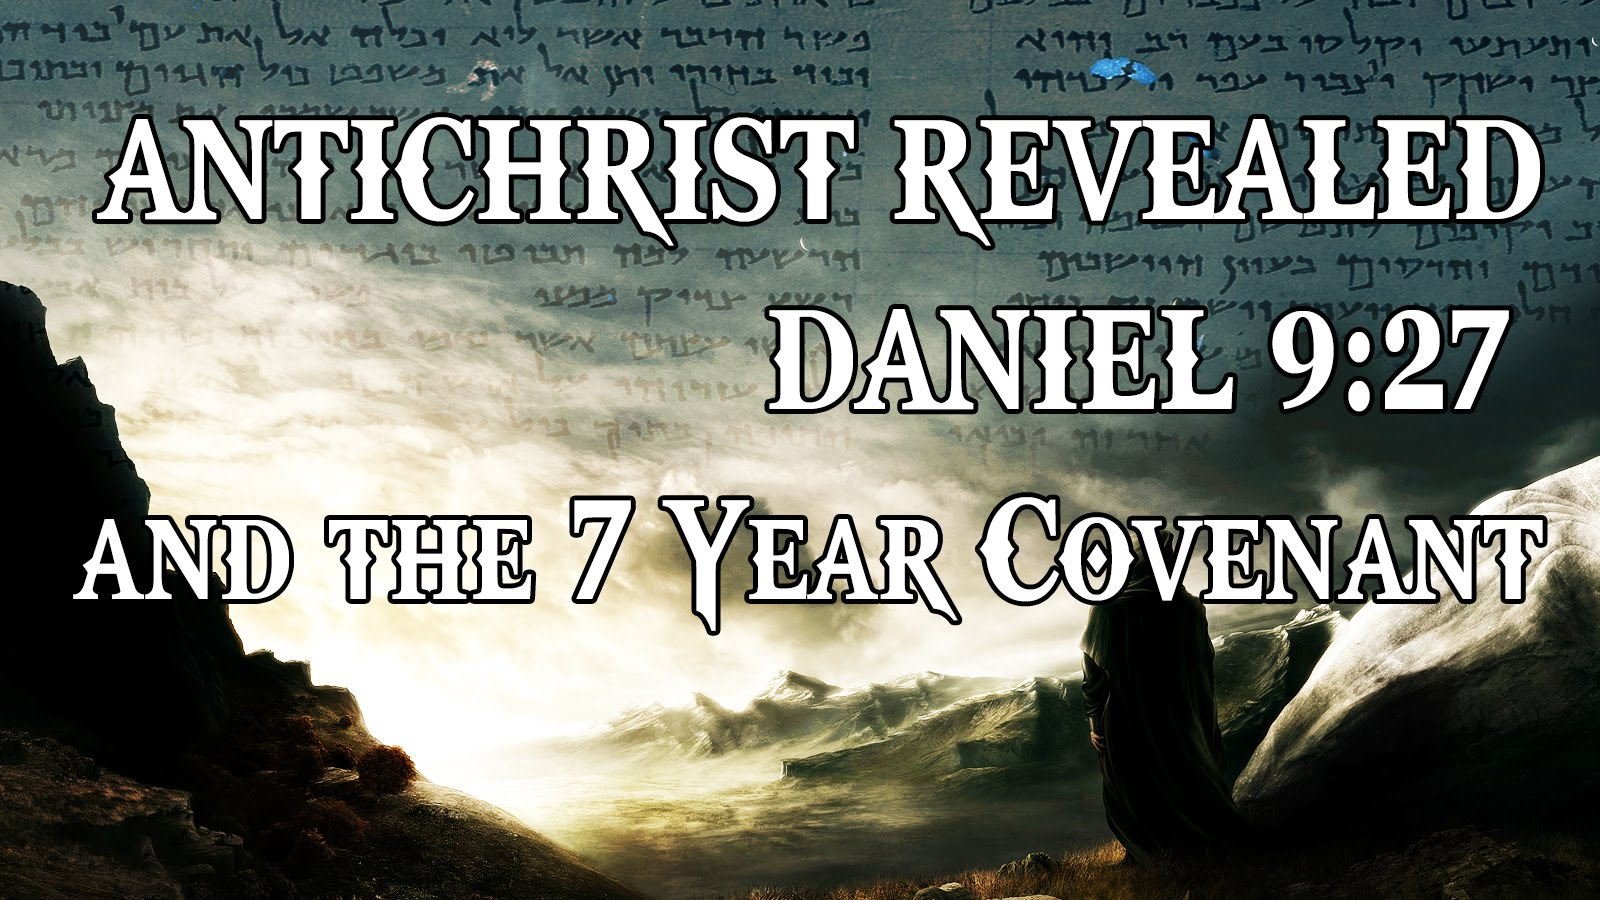 69 Years 7 Days Kislev 23 24 5777 December 23 25 2016 The